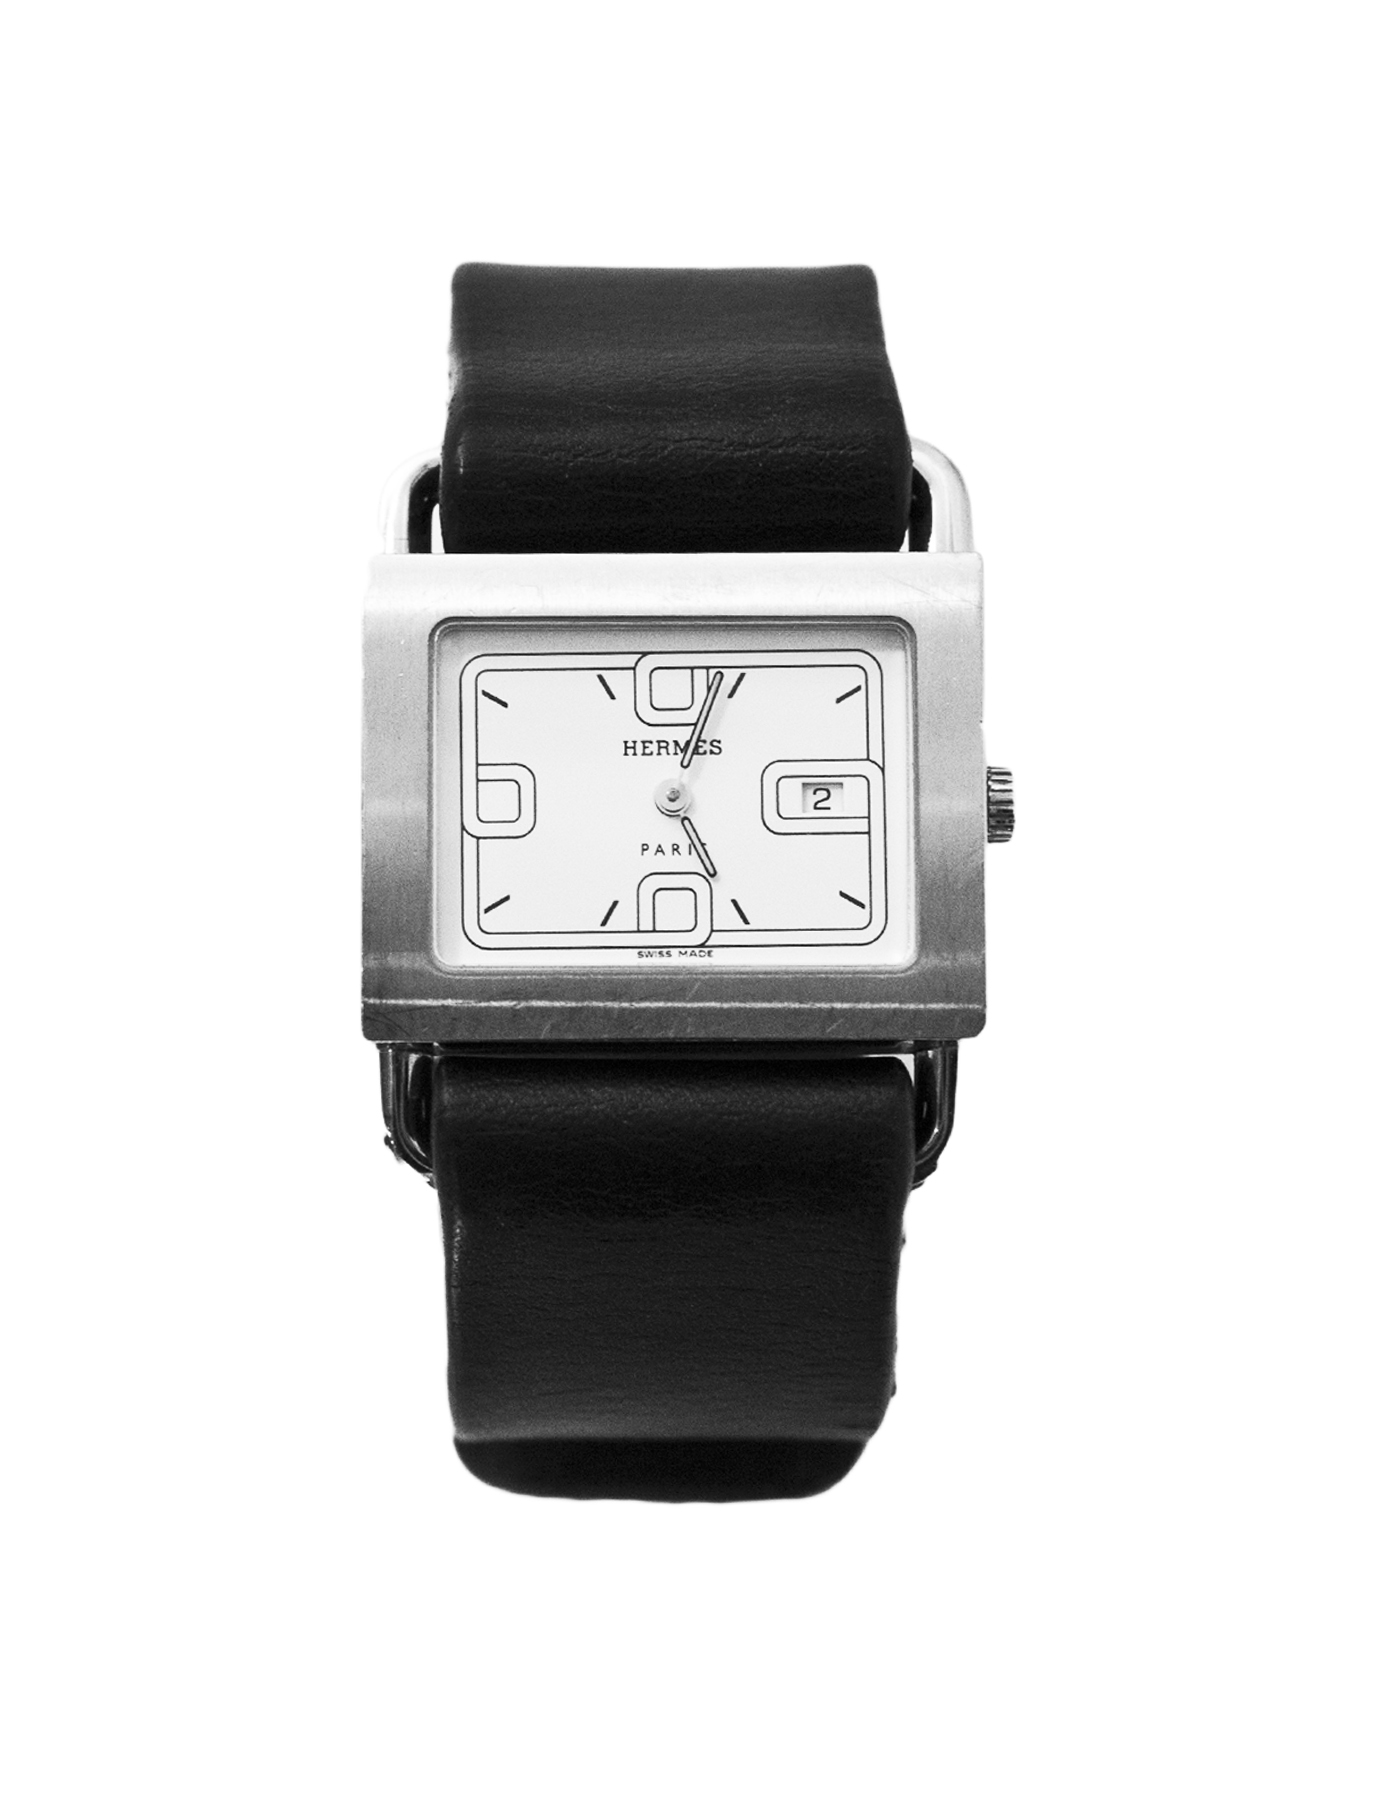 HERMES stainless steel square face barenia quartz watch w 2 straps 100-11251 7.jpg